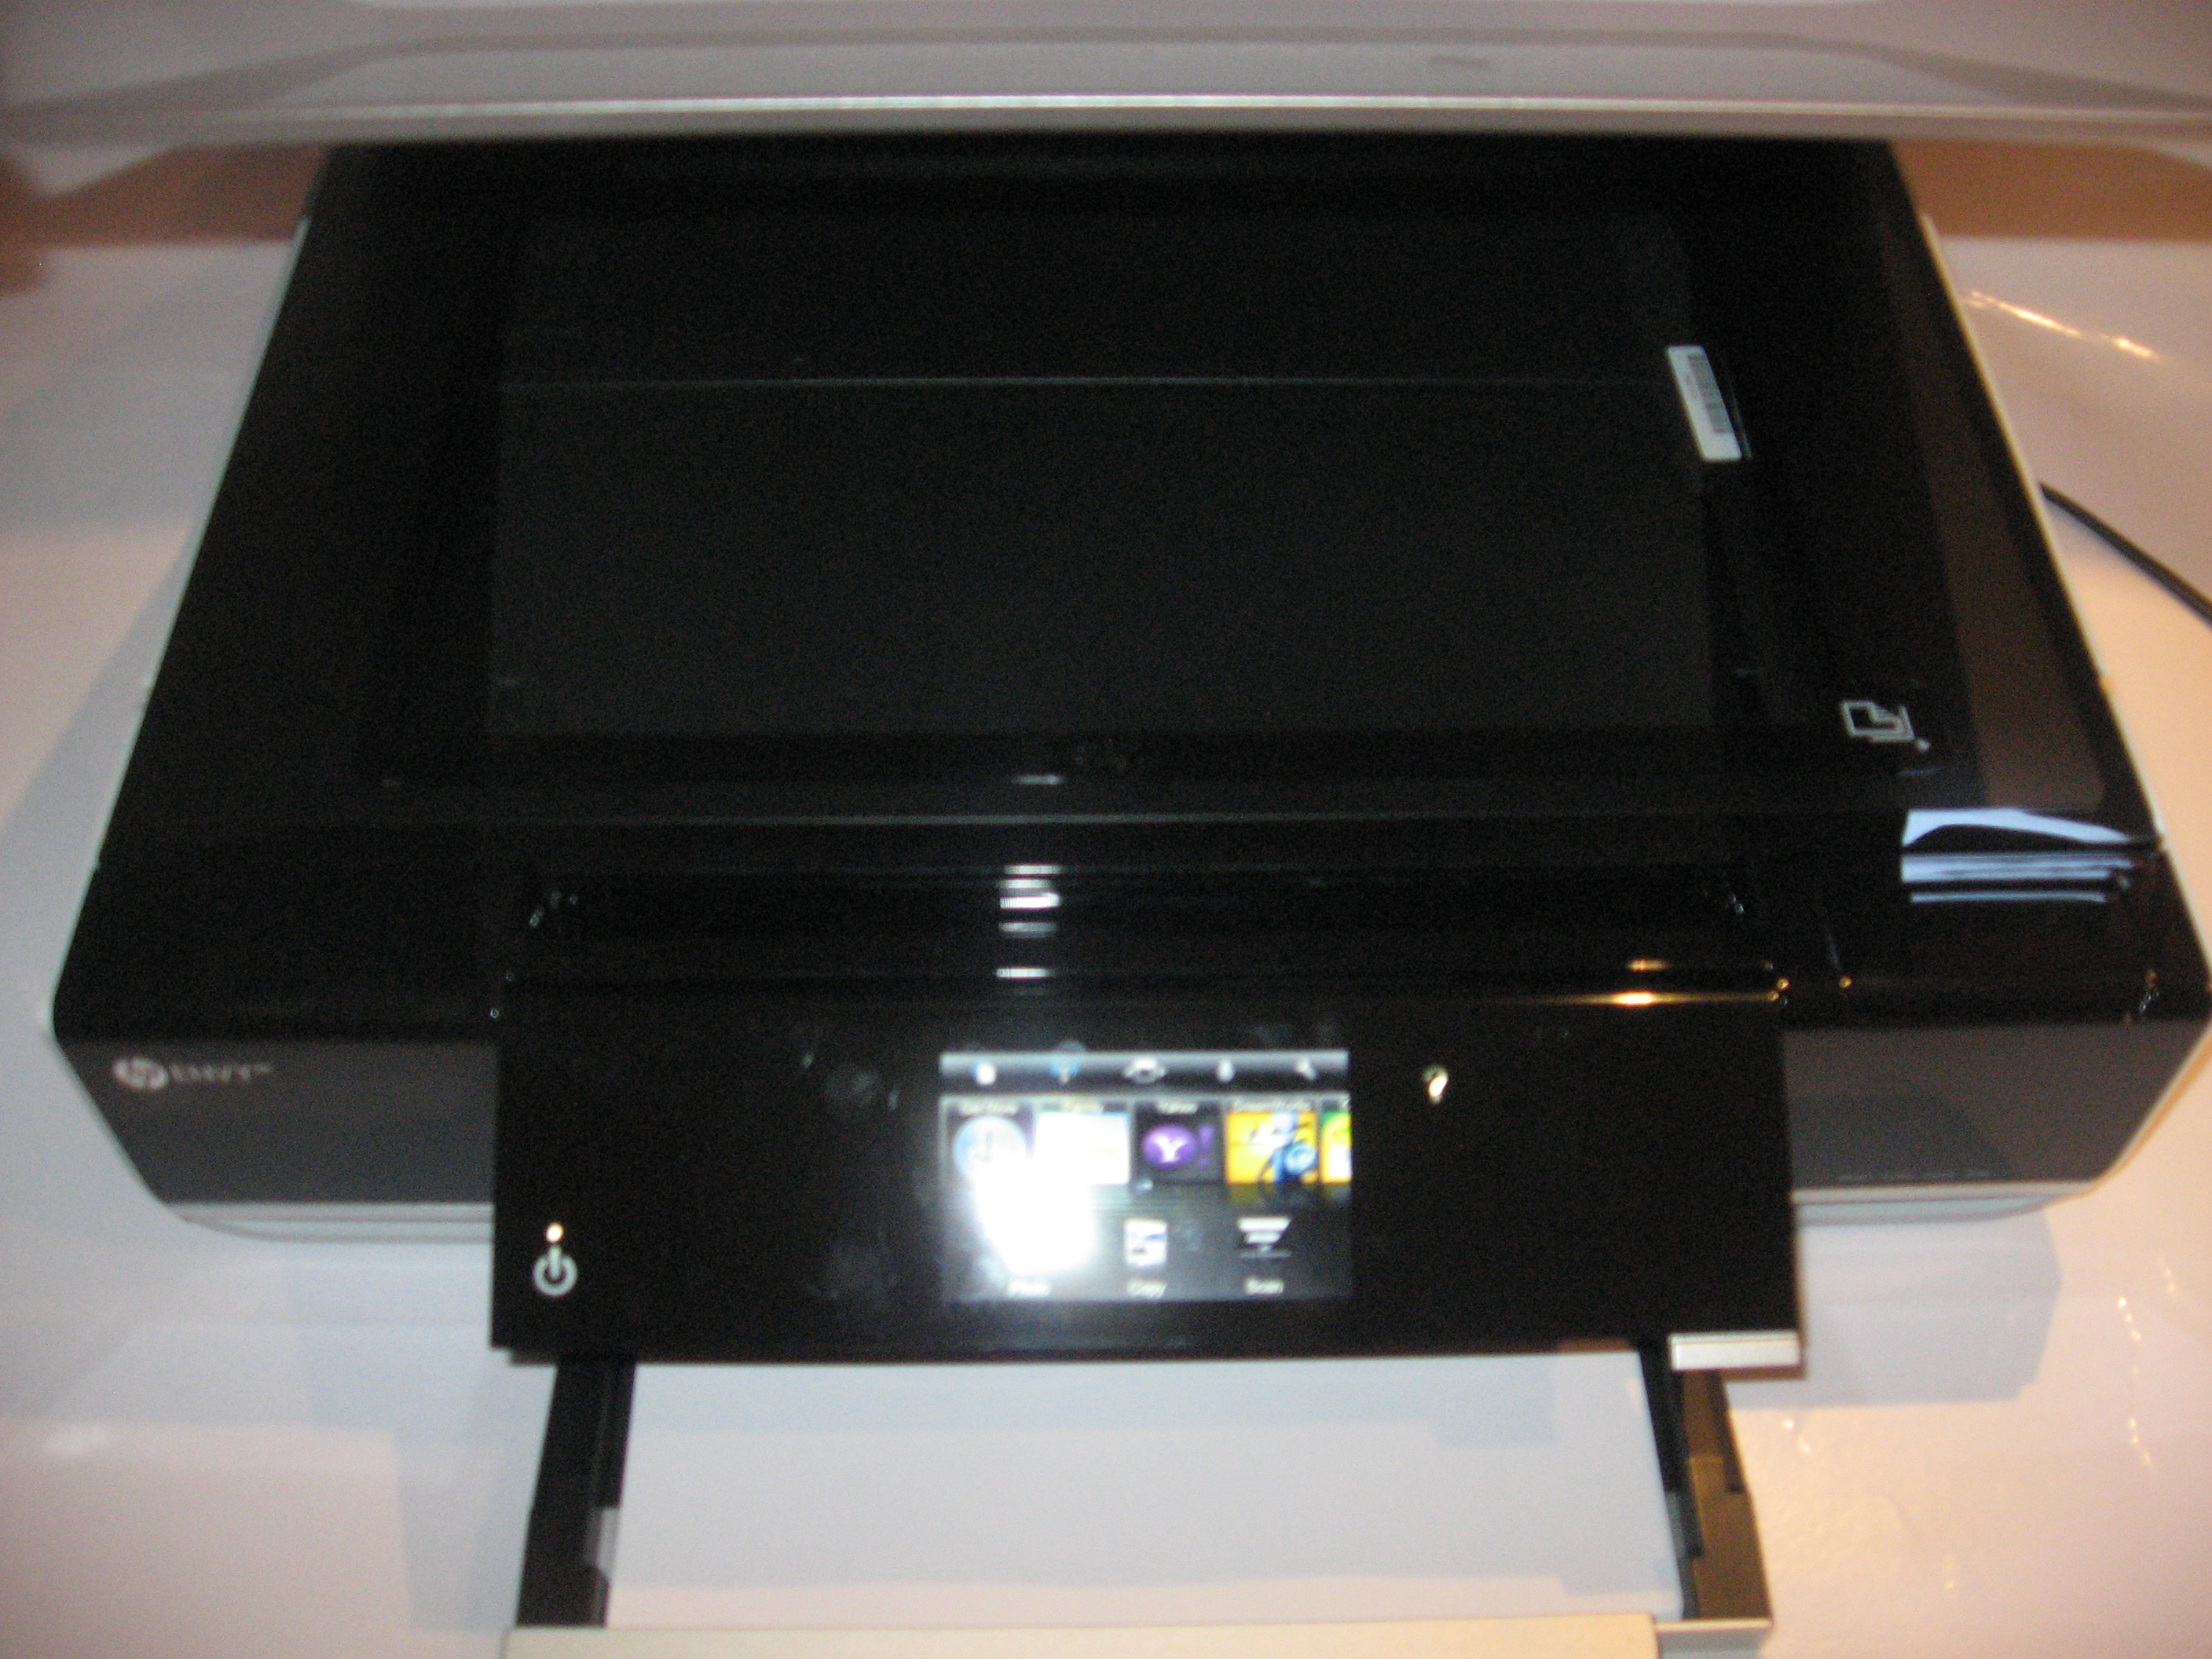 HP Envy 100 all-in-one printer (D410a) all lids open